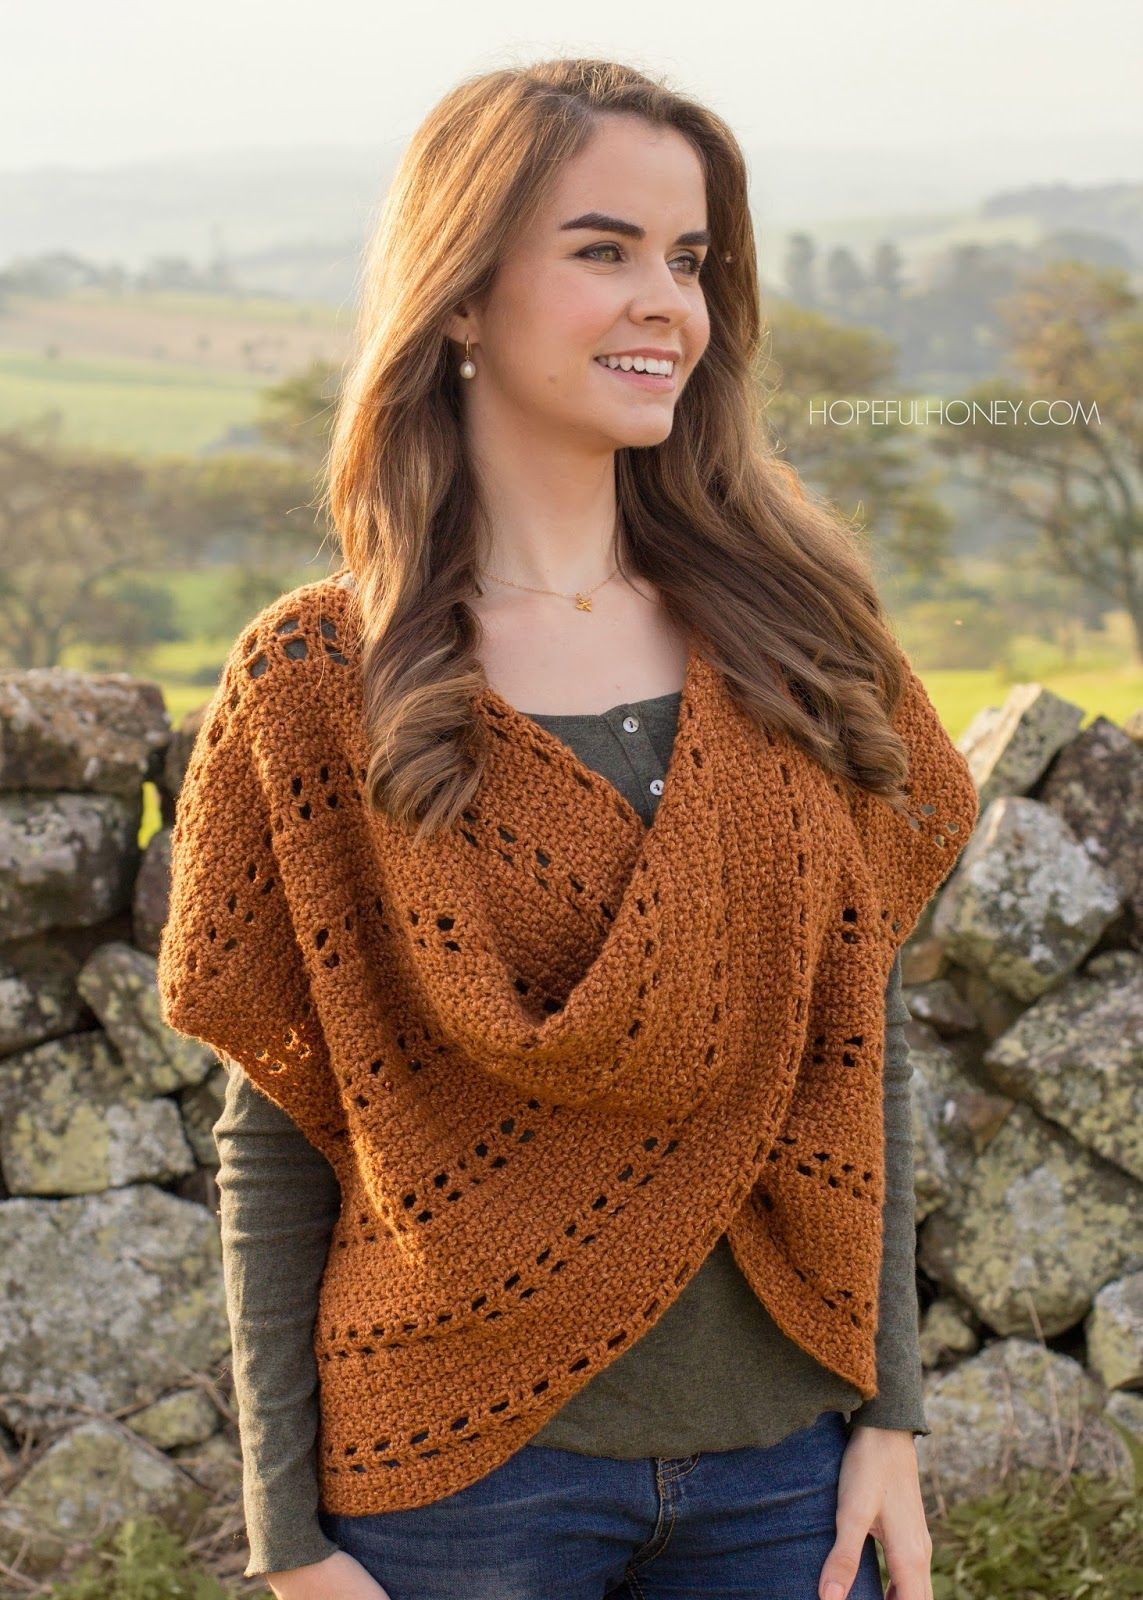 Cinnamon Roll Pullover Sweater - Crochet Pattern   Giveaway ...